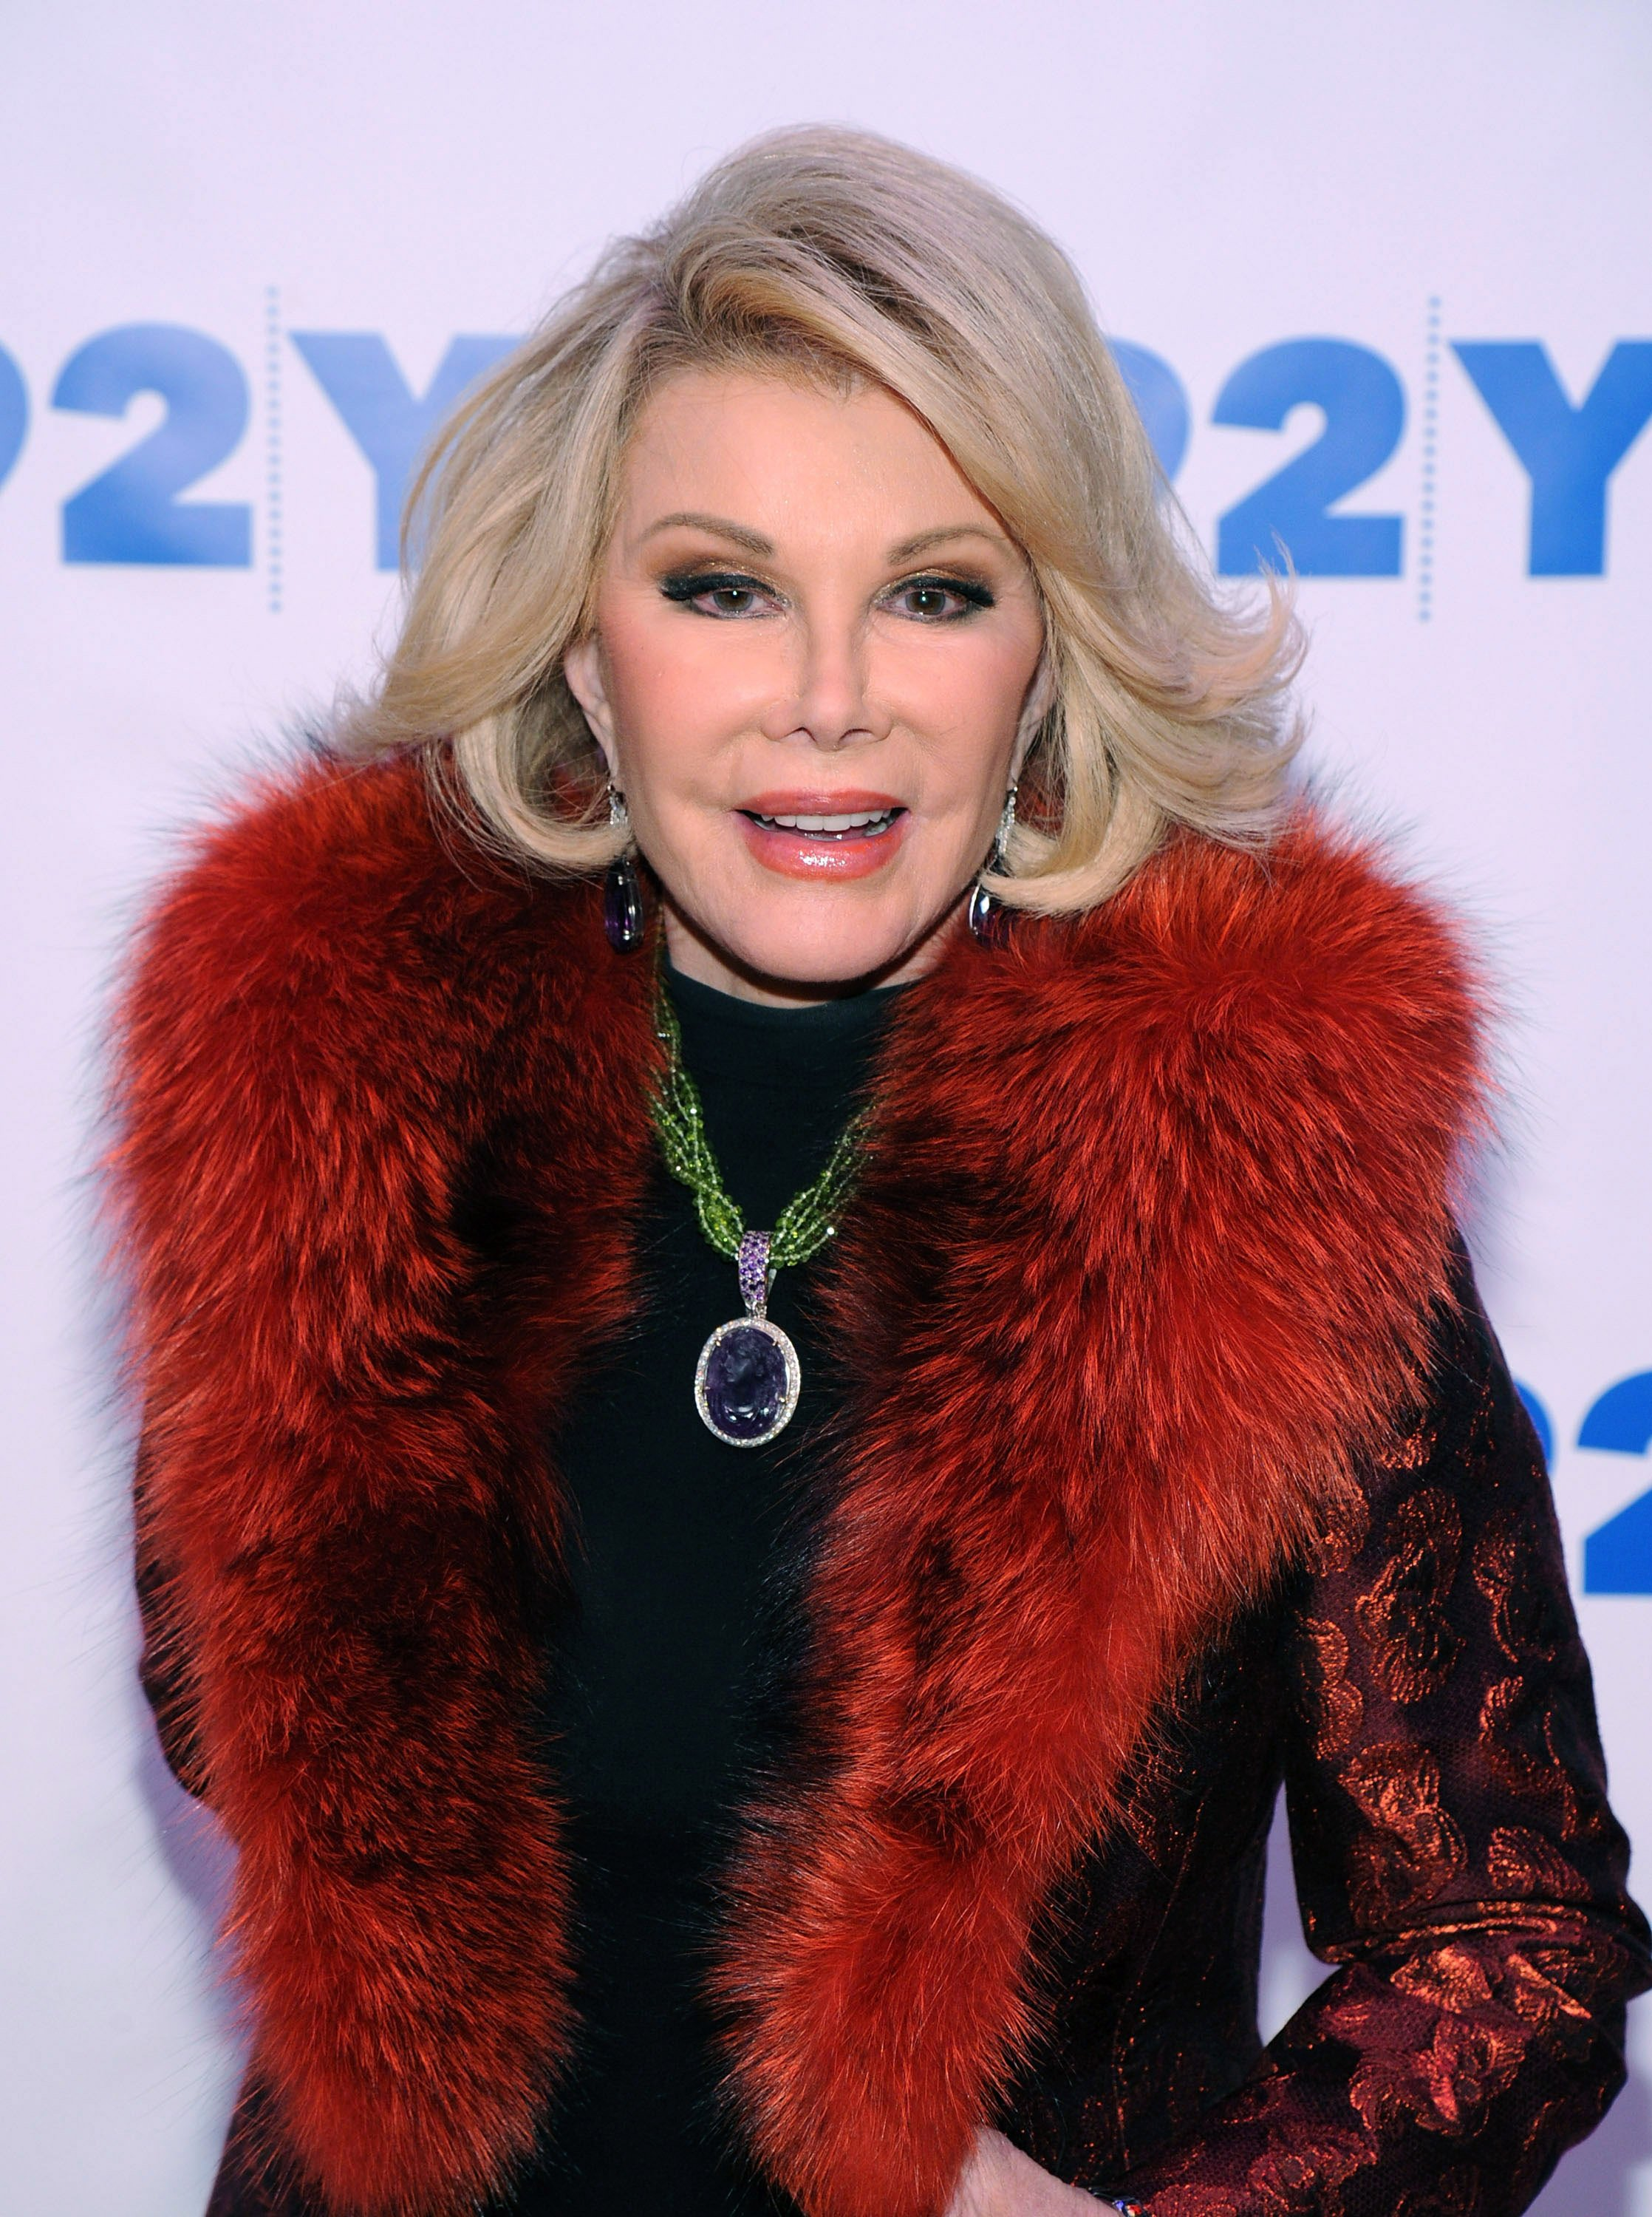 Joan Rivers attends An Evening with Joan and Melissa Rivers in New York City on January 22, 2014 | Photo: Getty Images